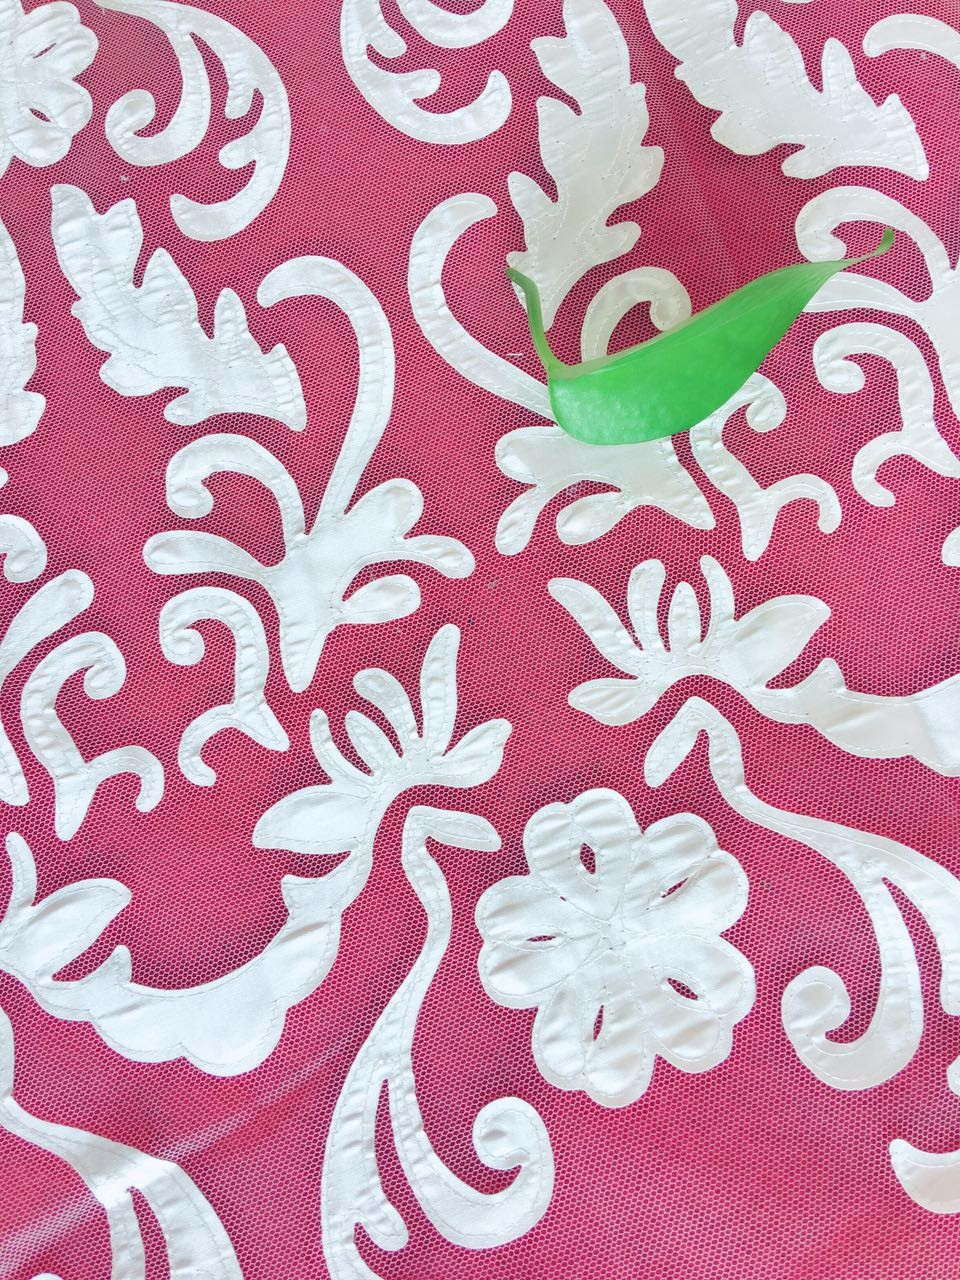 2017 new laser cutting chemical satin embroidery lace fabric